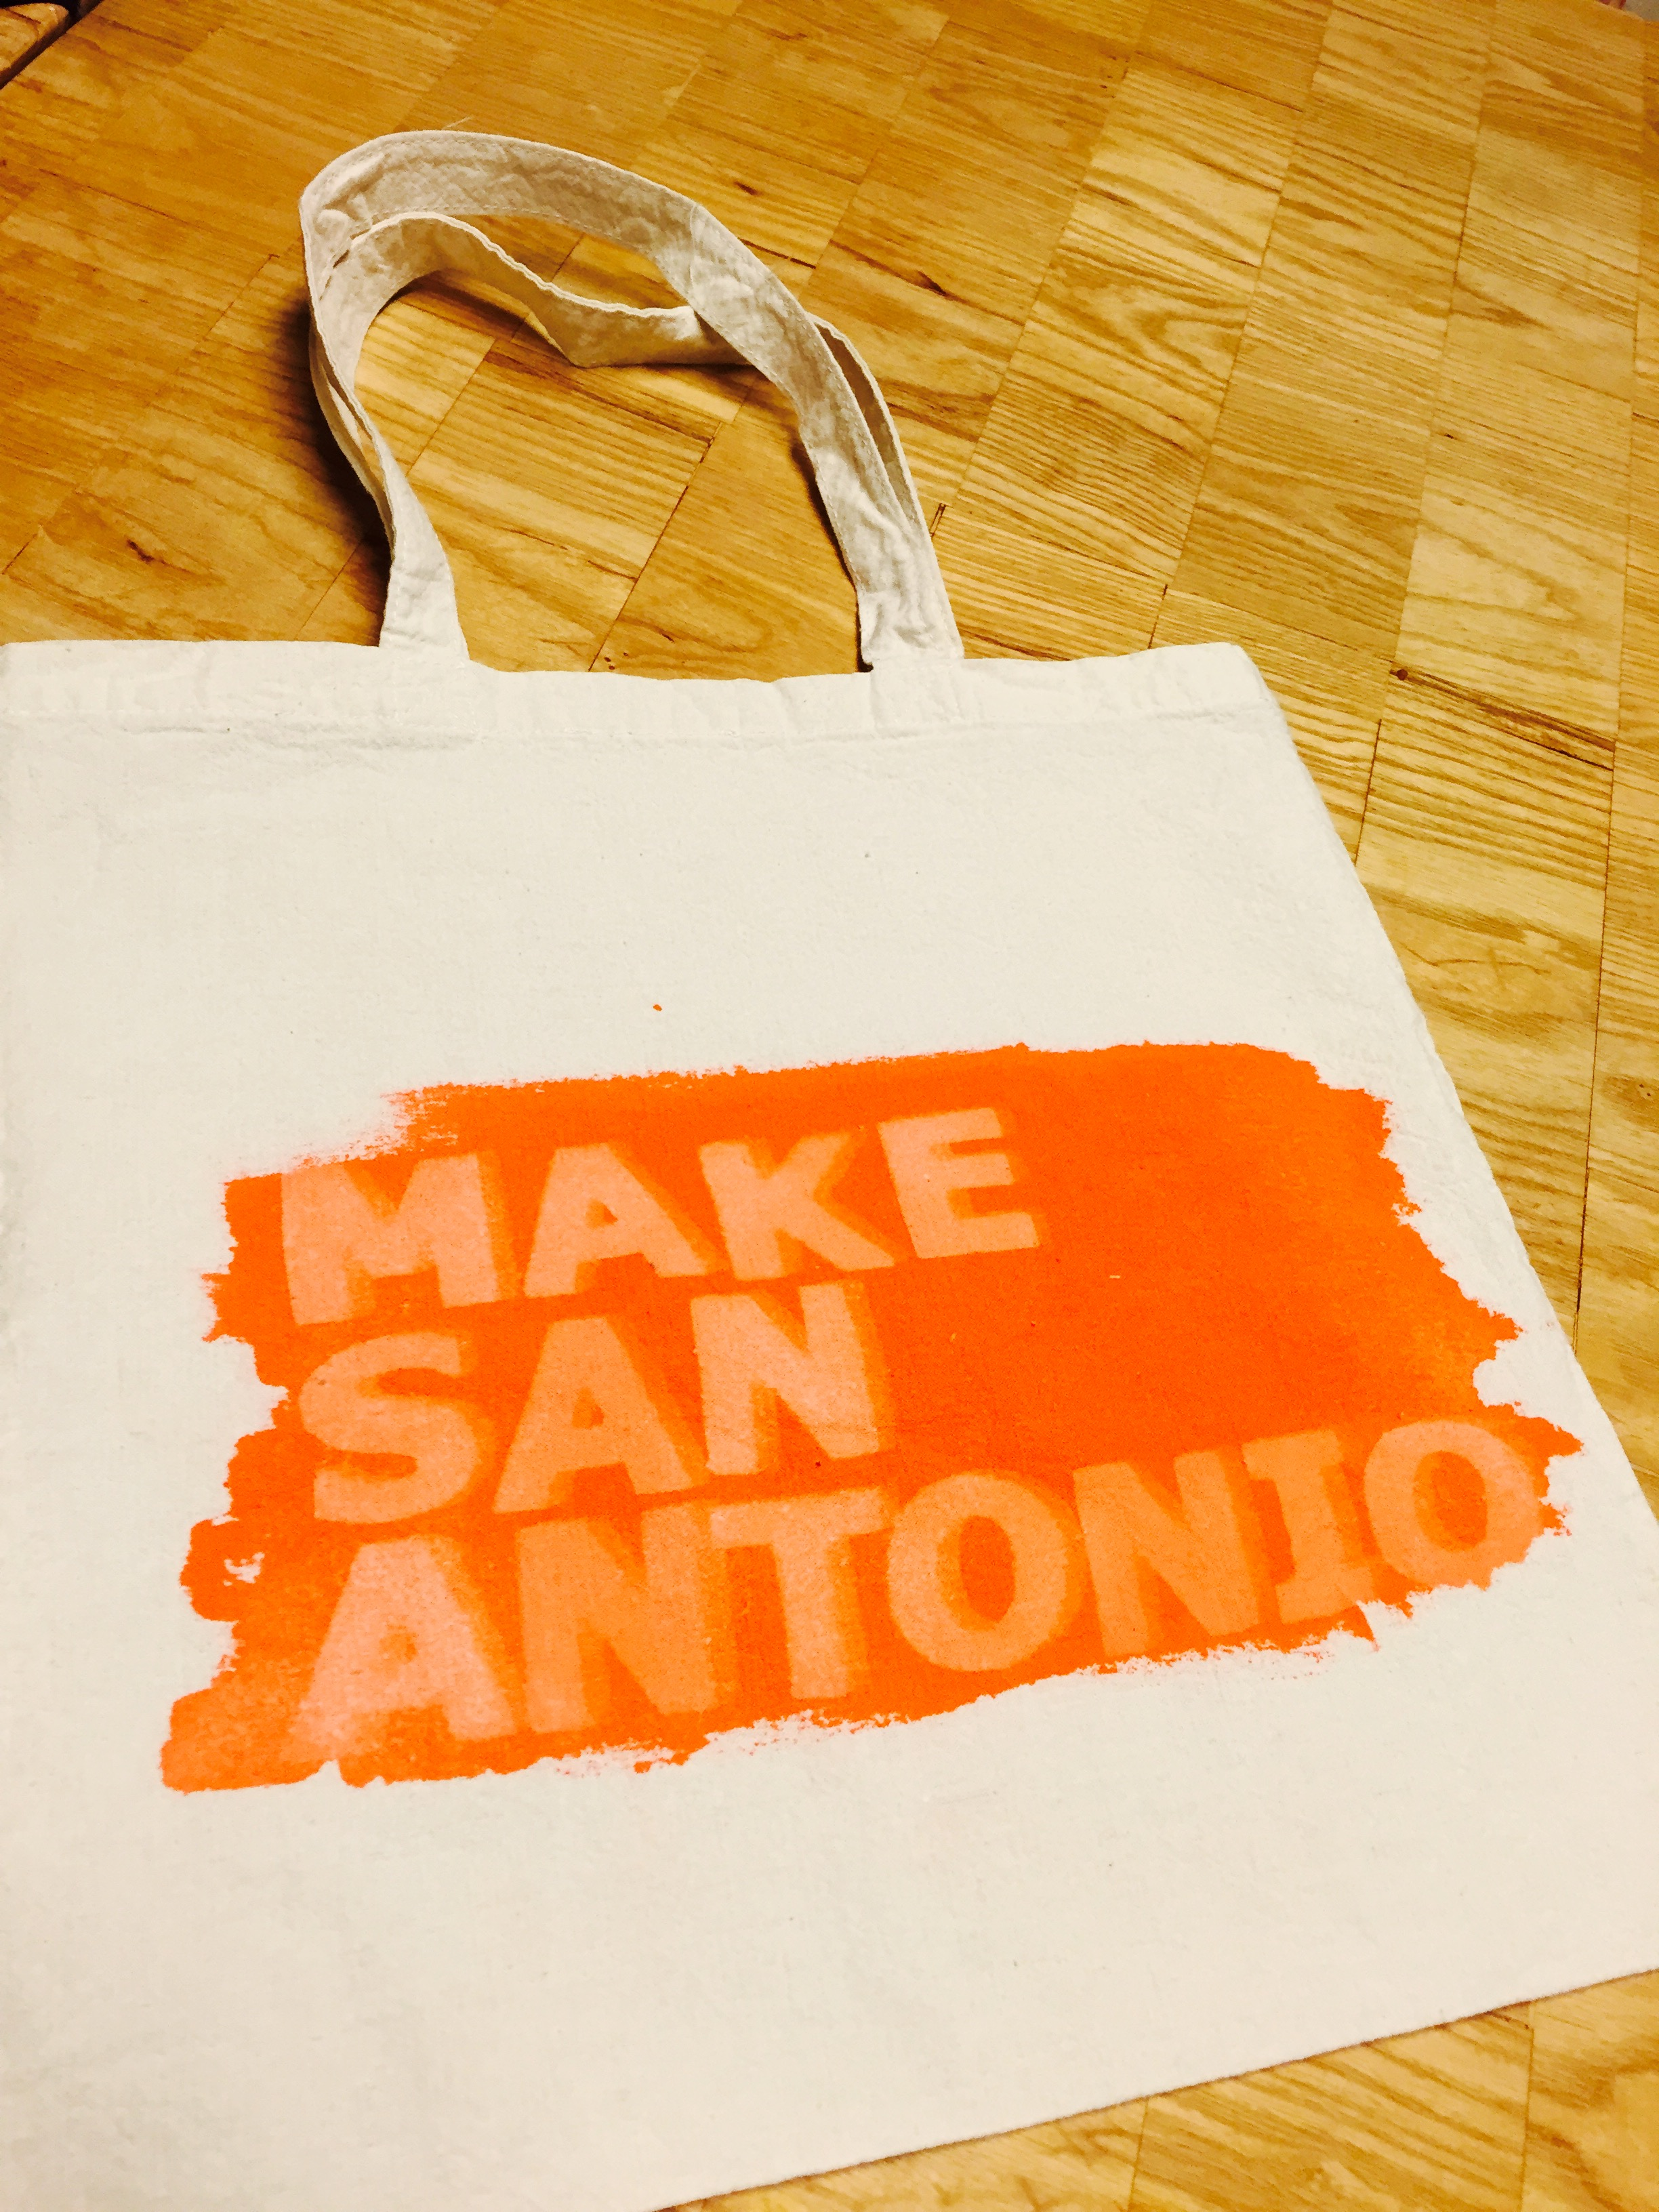 Make San Antonio Tote